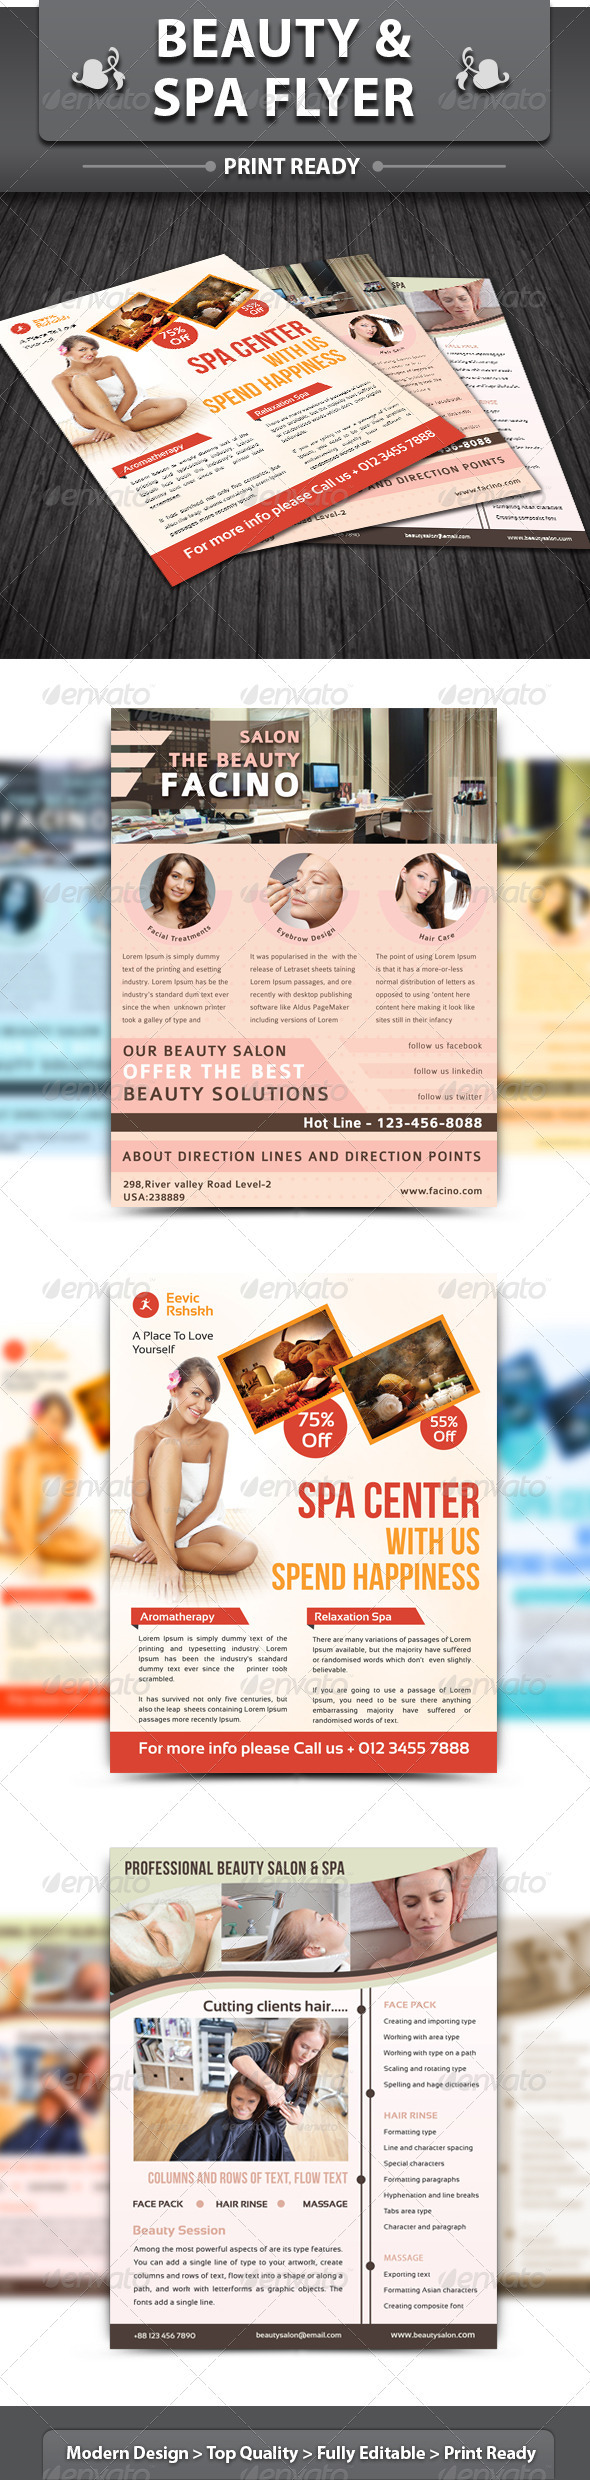 Spa & Beauty Saloon Flyer | Bundle 1 - Corporate Flyers